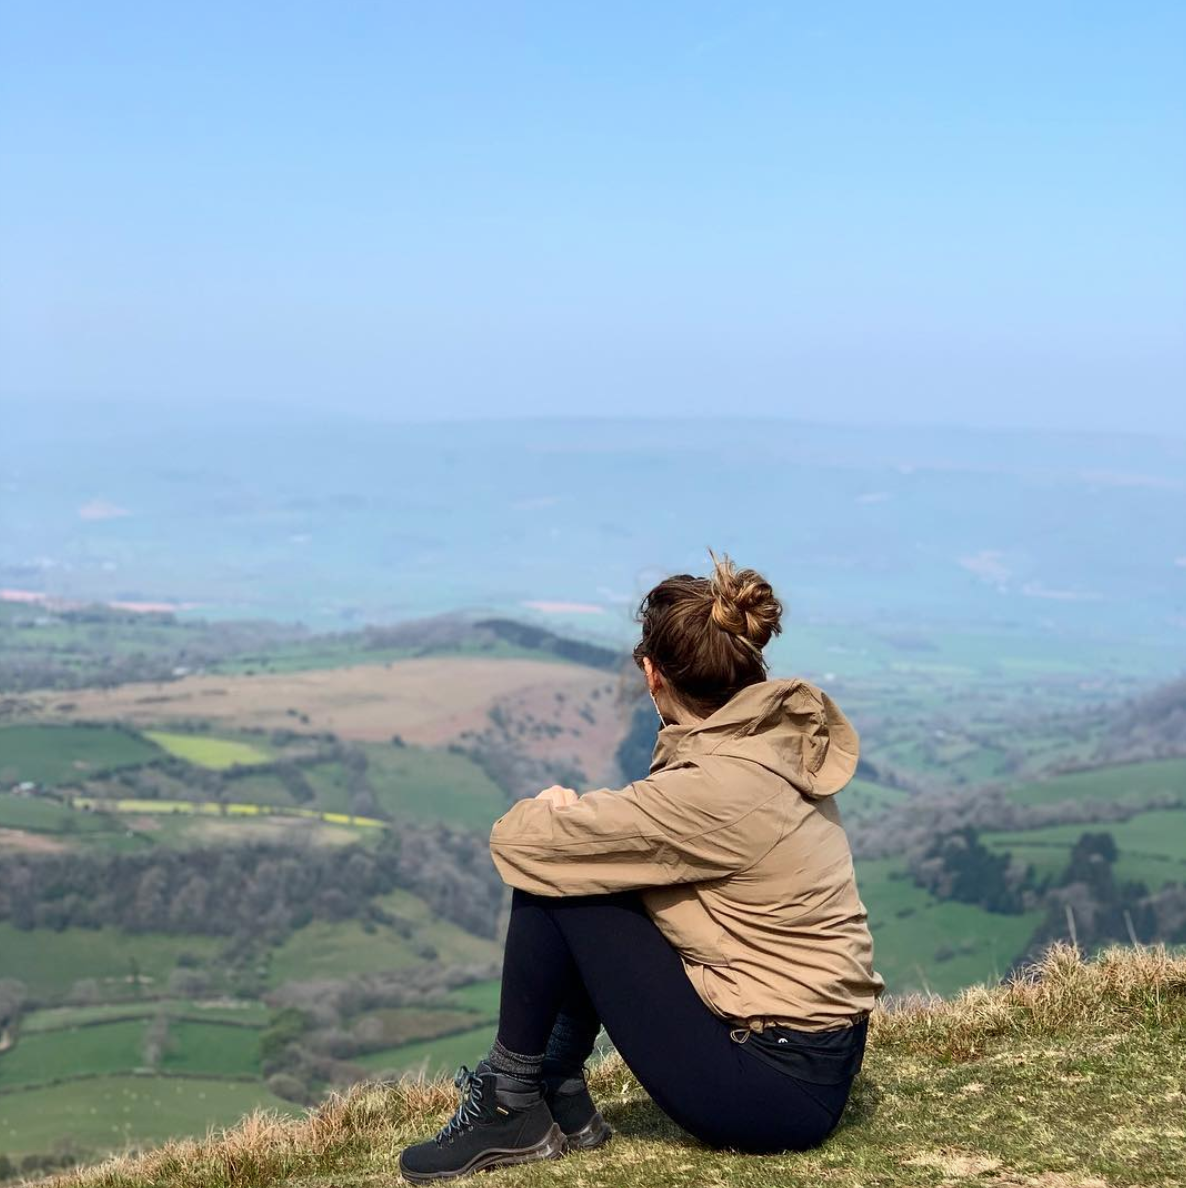 Life and The brecon beacons - What I've seen this month is short and sweet and pretty straightforward this month - I took time off social media over the Bank Holiday weekend and it allowed me to see everything else. I gave my chance to see everything that didn't exist on the little online brick we all carry around with us. Fresh air and views of the stunning Brecon Beacons in Wales - something I know that we all can and should find the time to see!